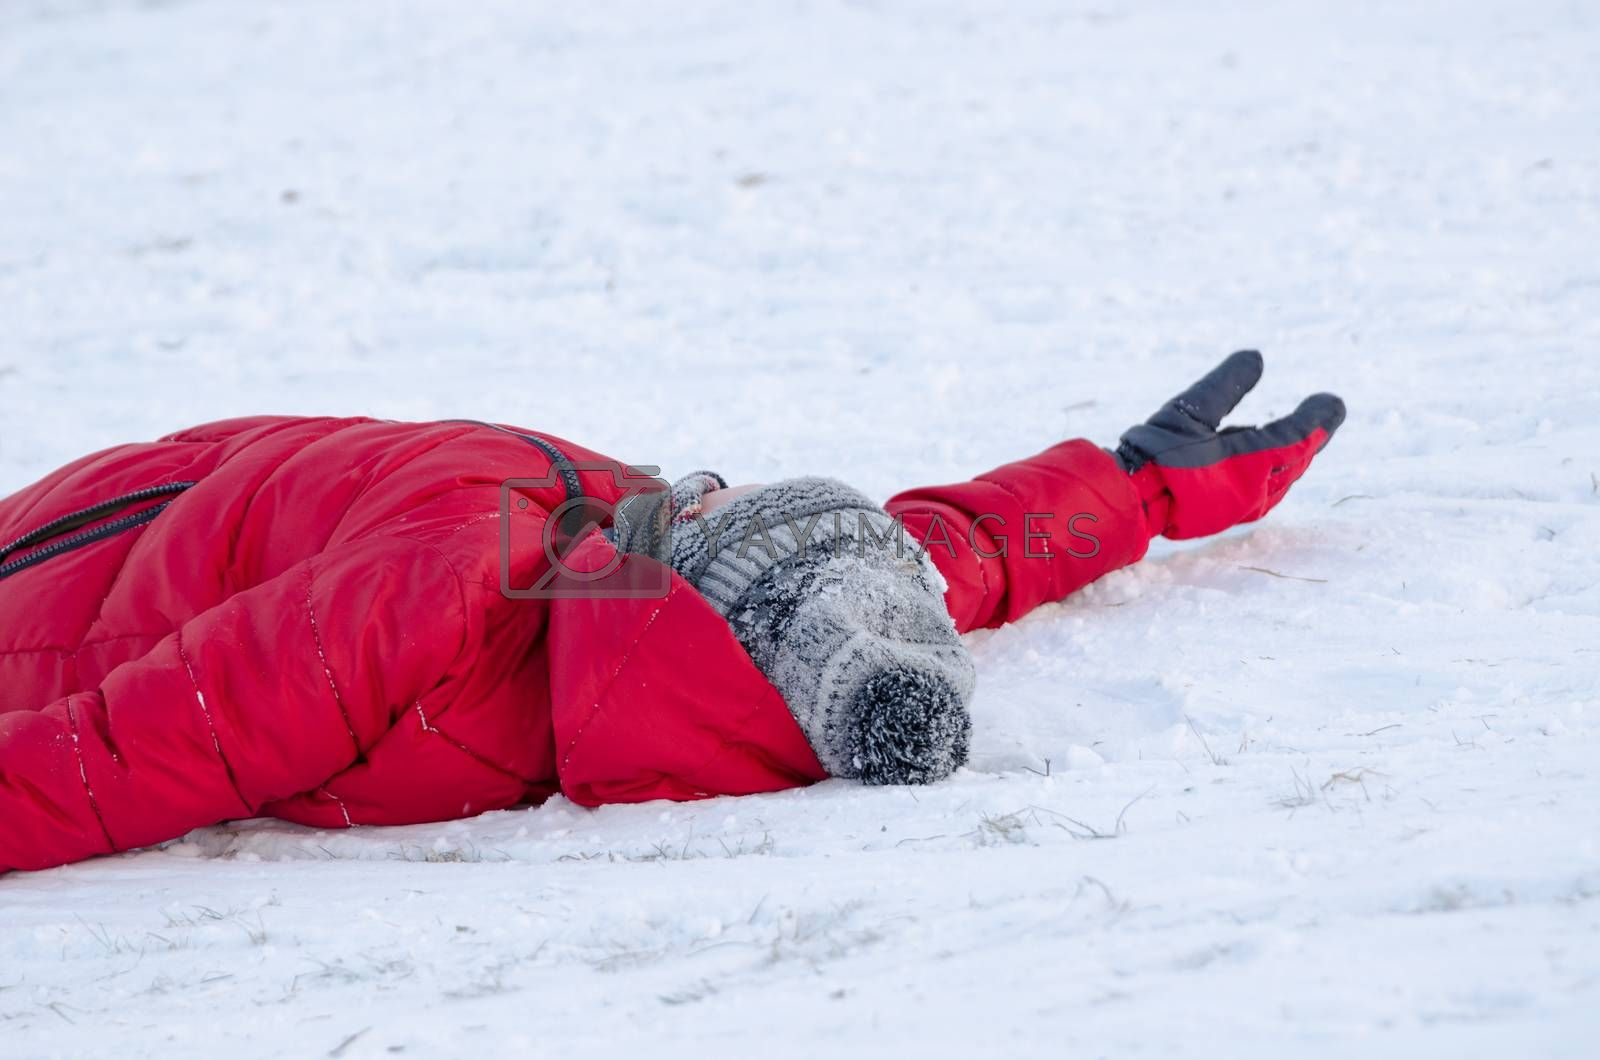 child lie on snow with warm red feather jacket tired from slide outdoors, winter time leisure